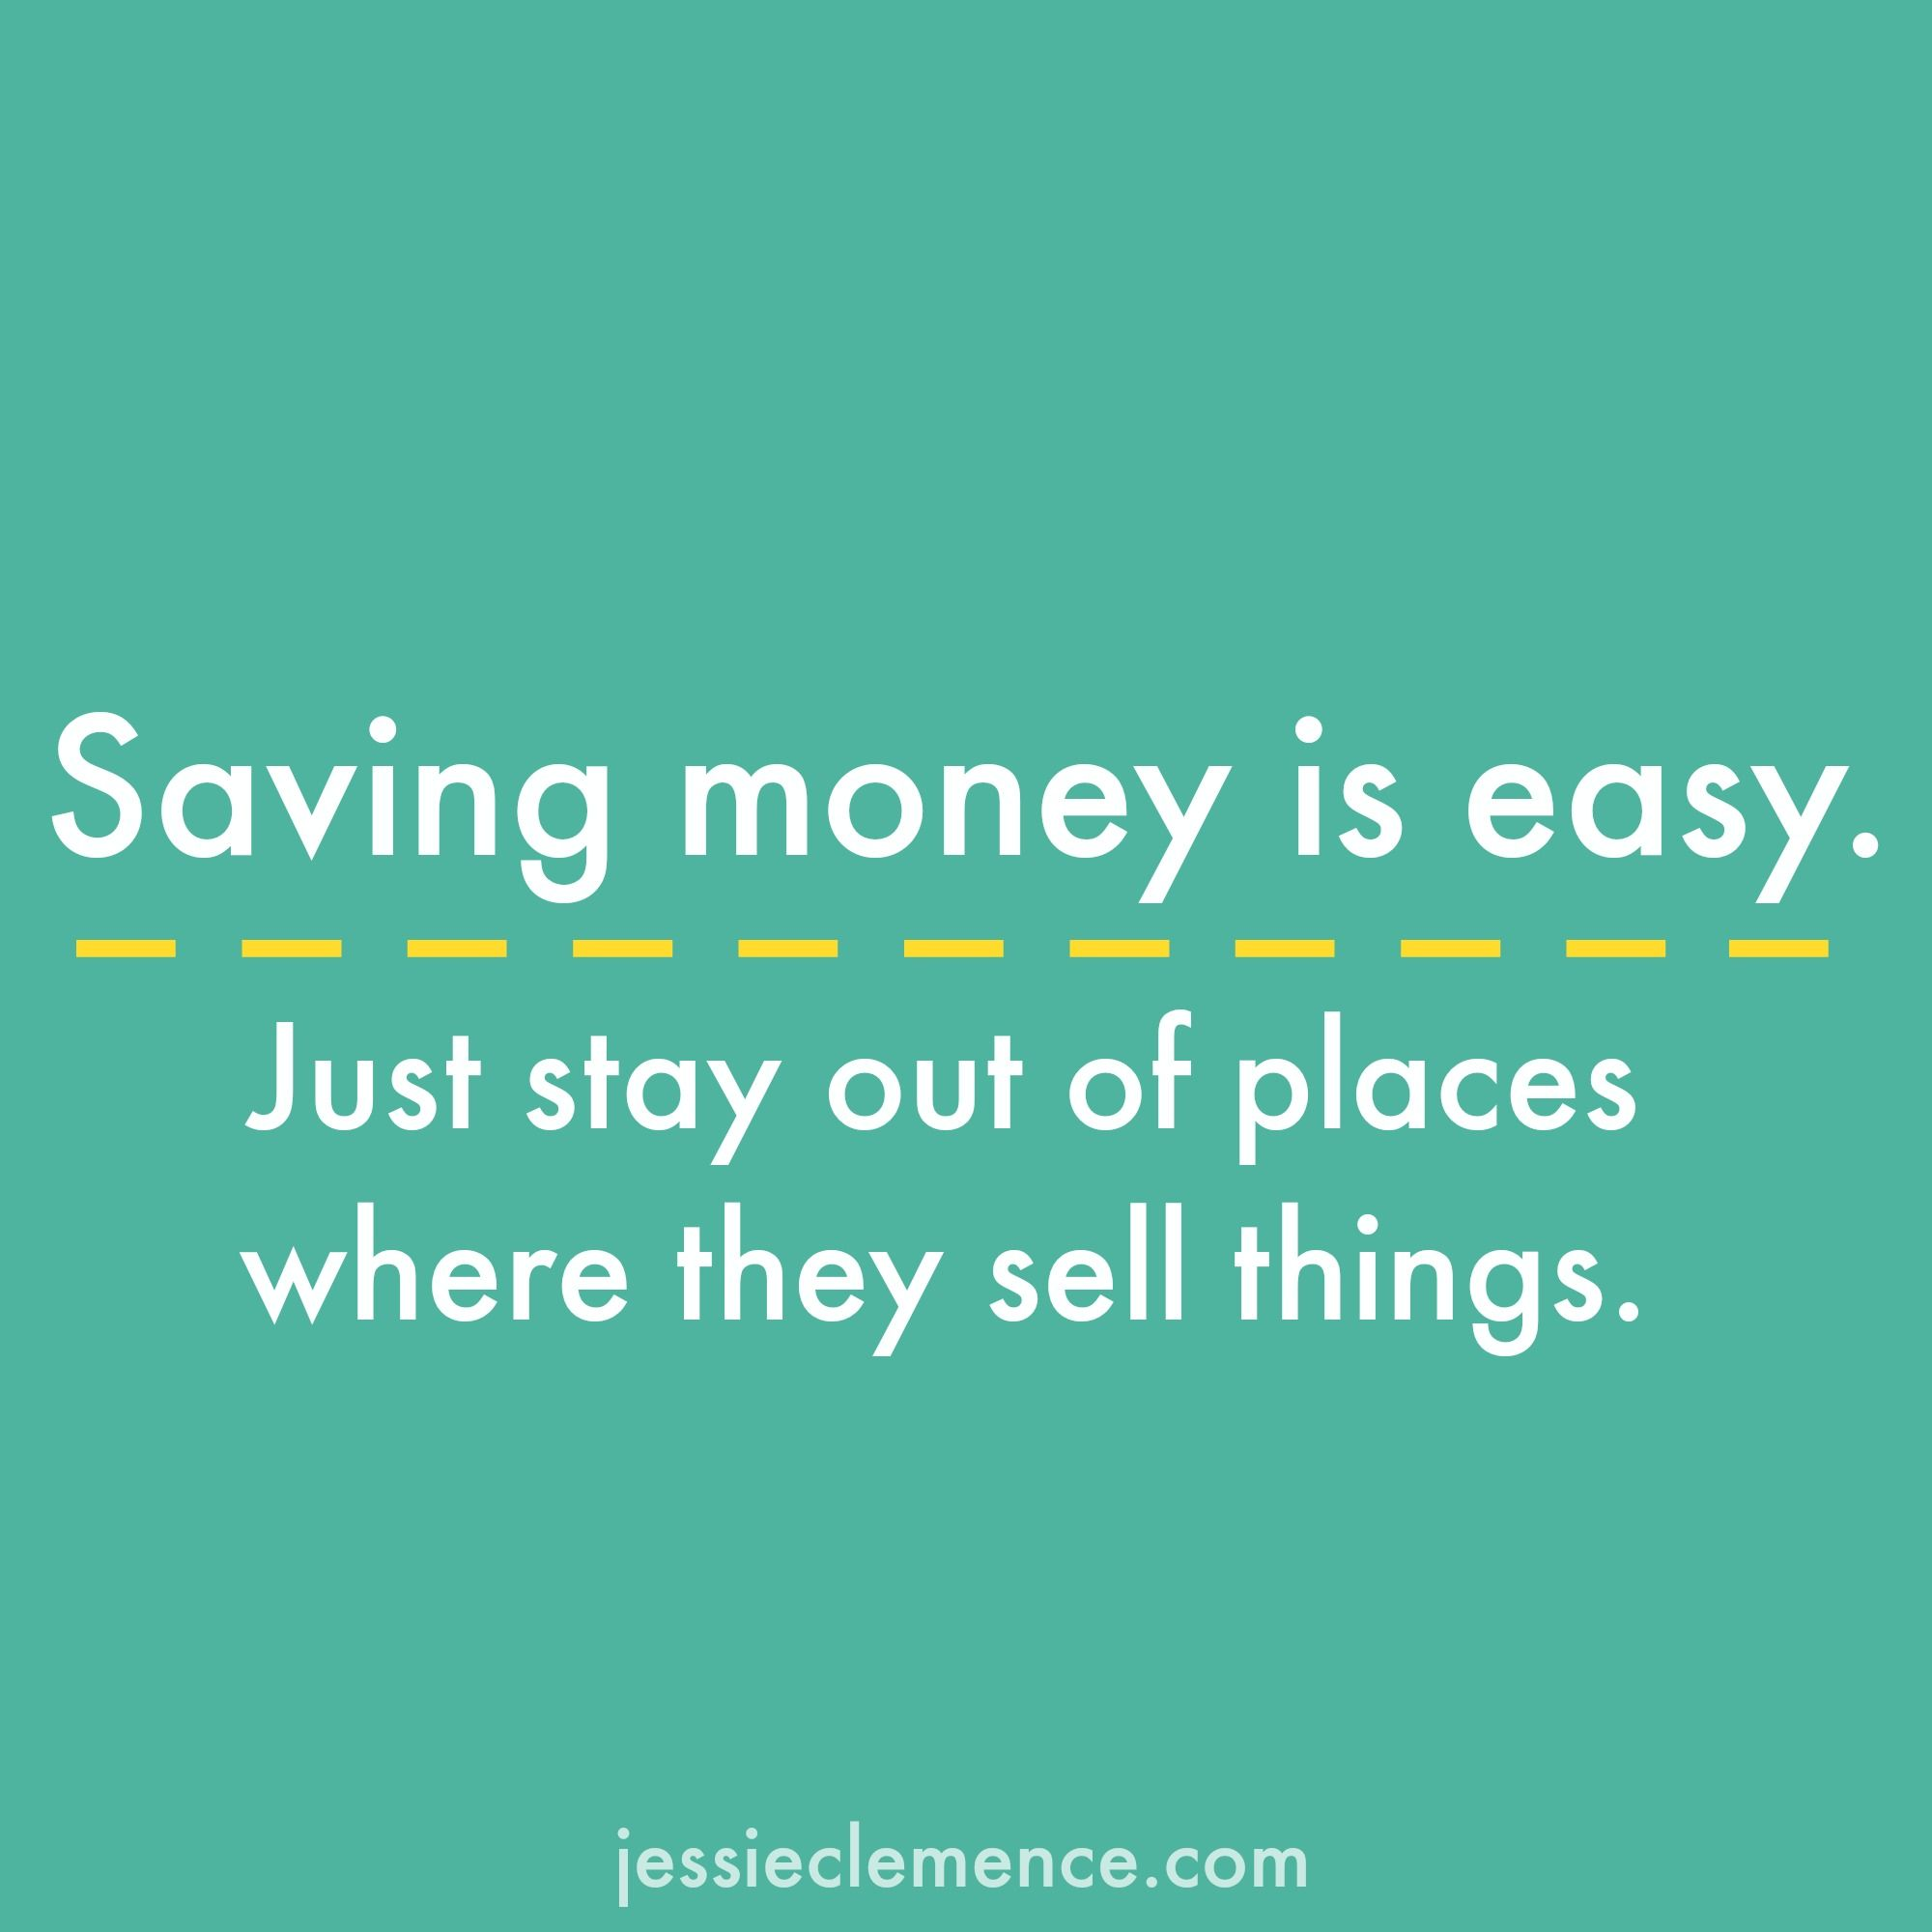 Haha Yep Saving Money Is Easy Just Stay Out Of Places Where They Sell Things Saving Money Quotes Funny Money Quotes Funny Saving Money Quotes